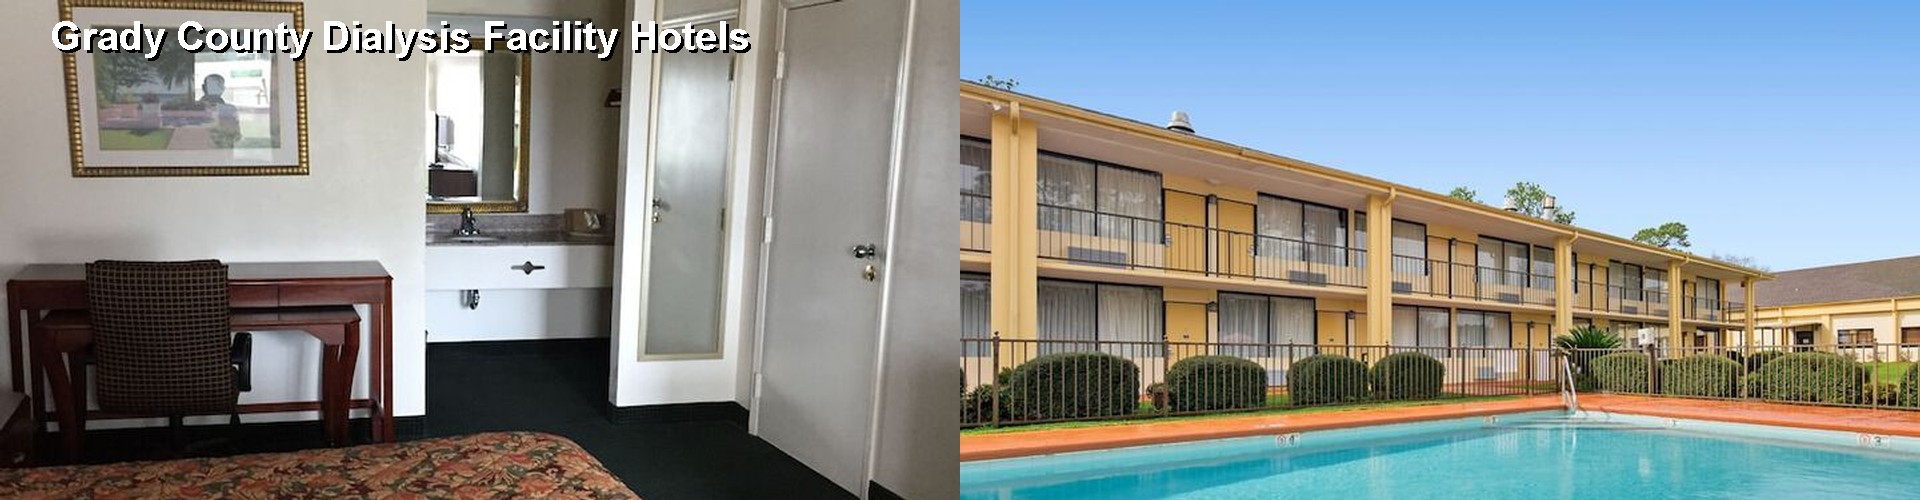 5 Best Hotels near Grady County Dialysis Facility